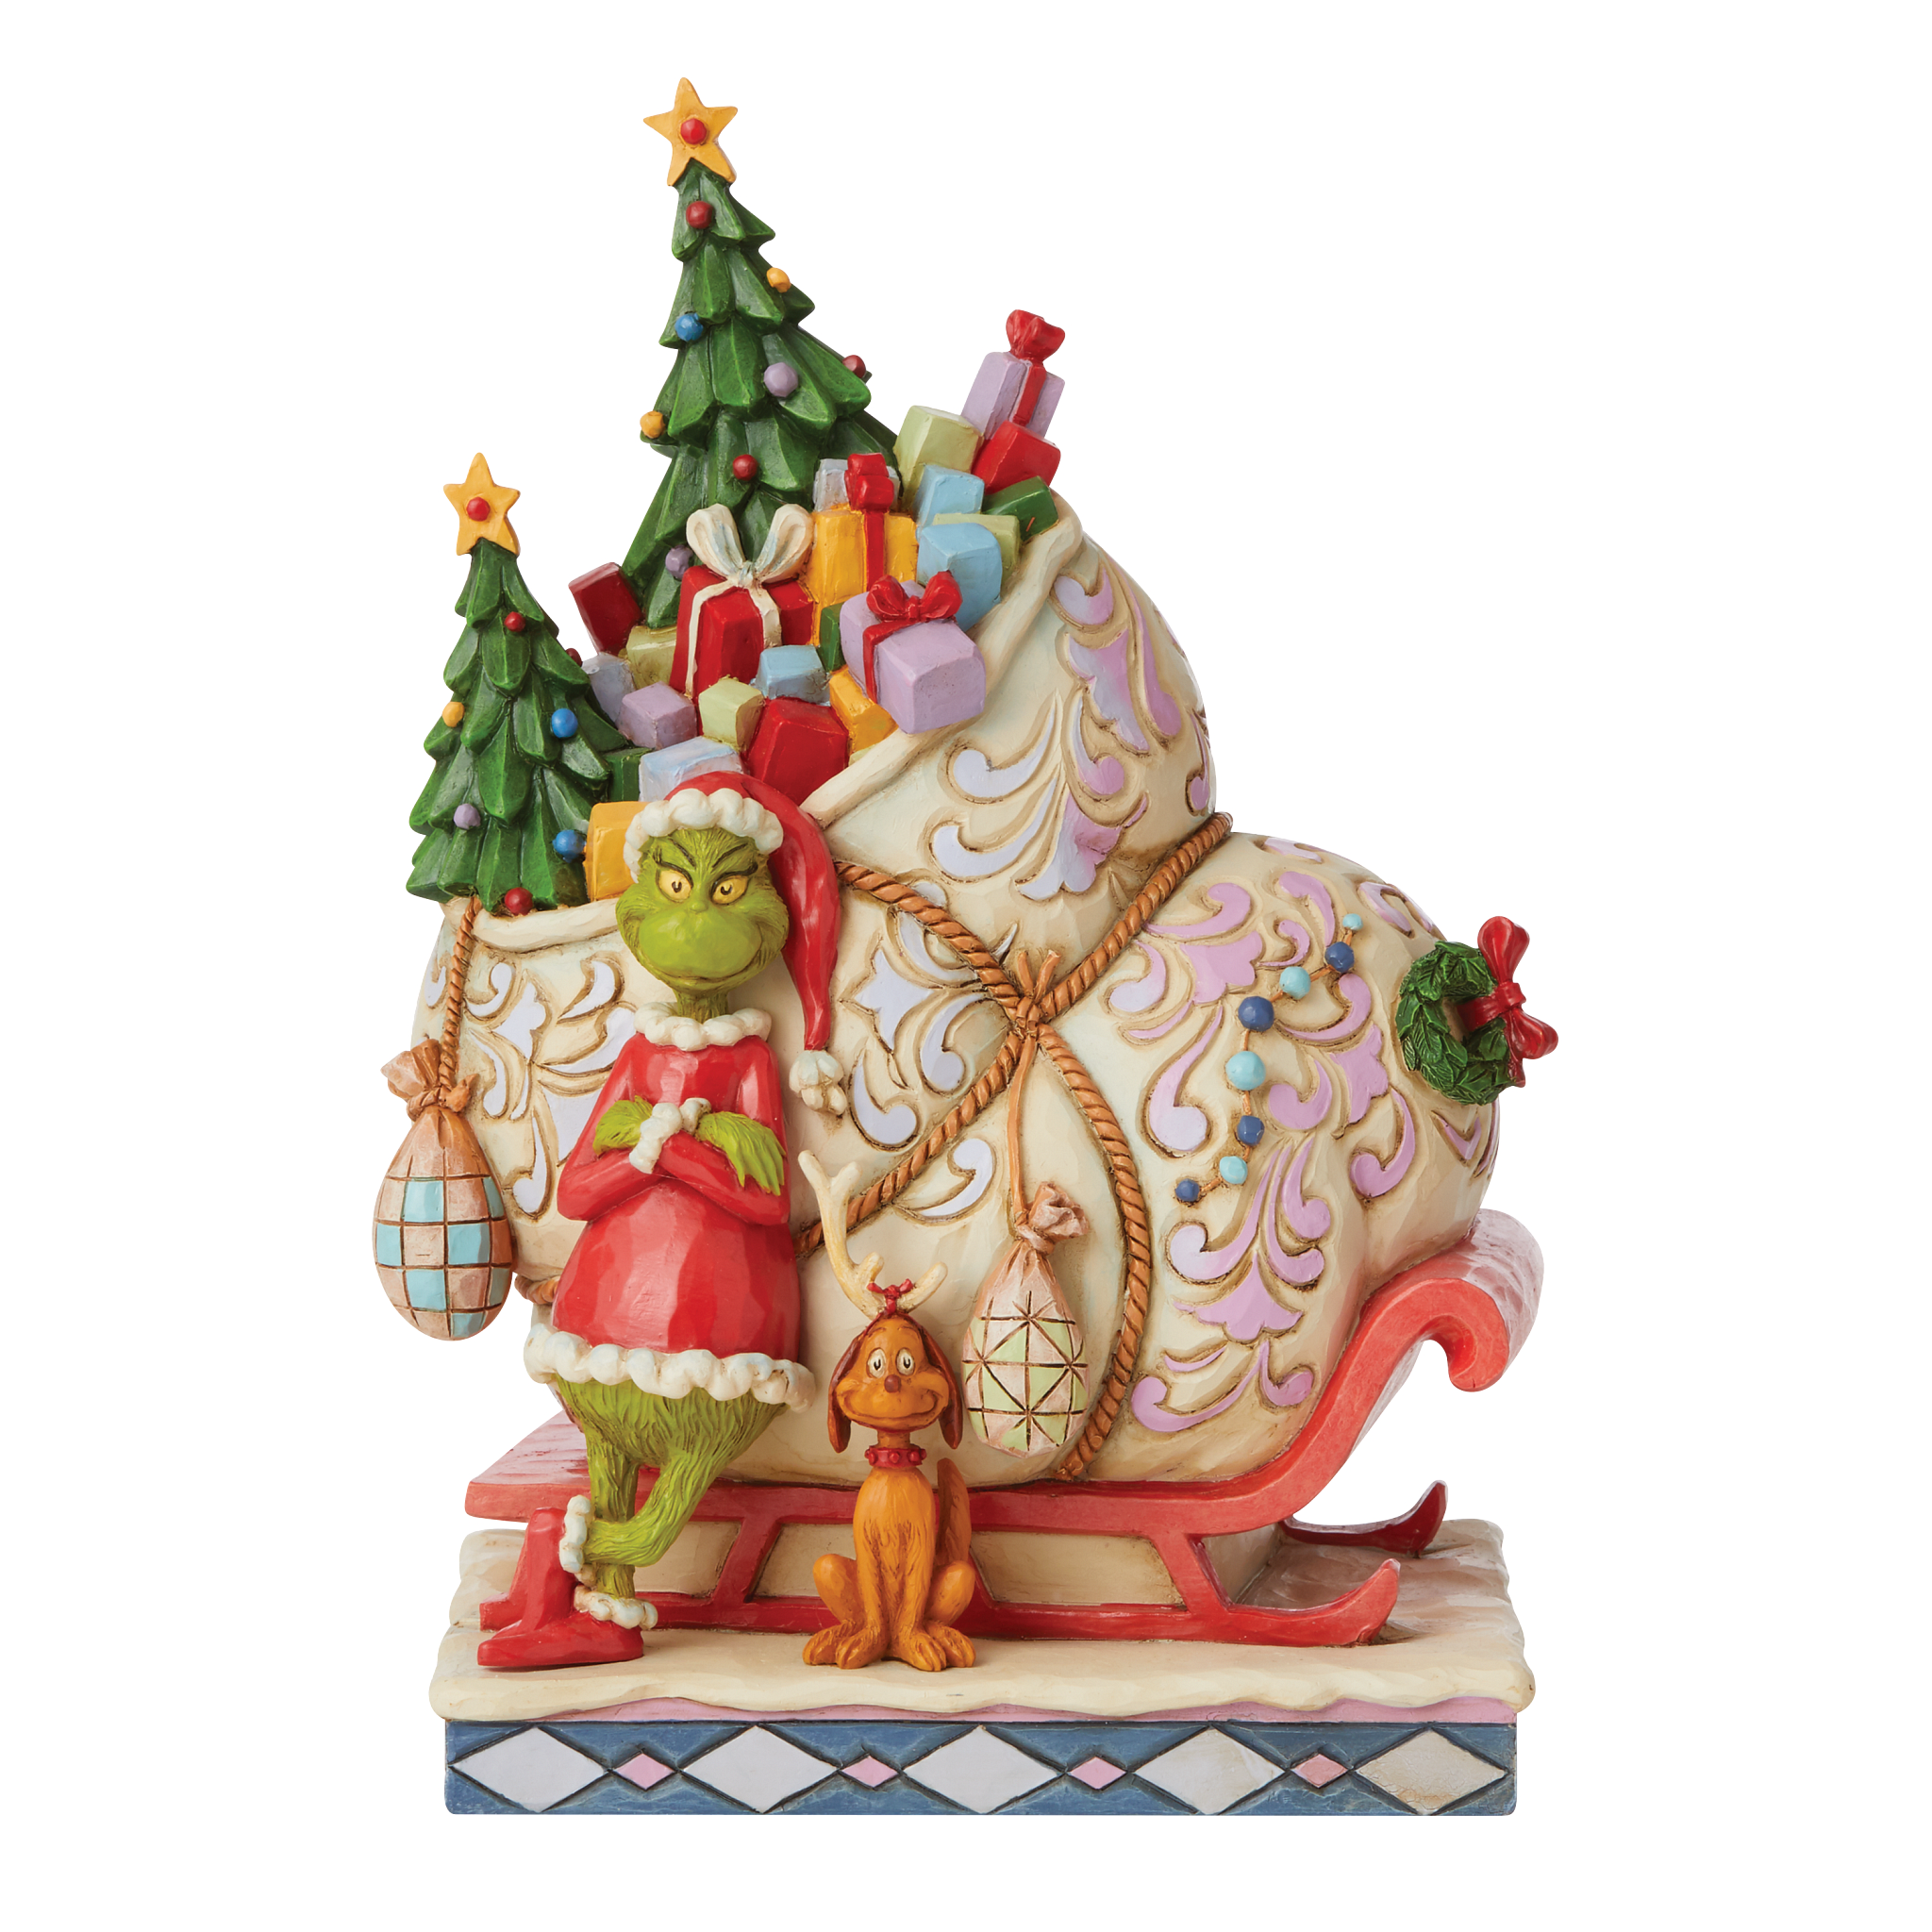 Jim Shore - Figurines 'Grinch by Sleigh With Max N' 2021